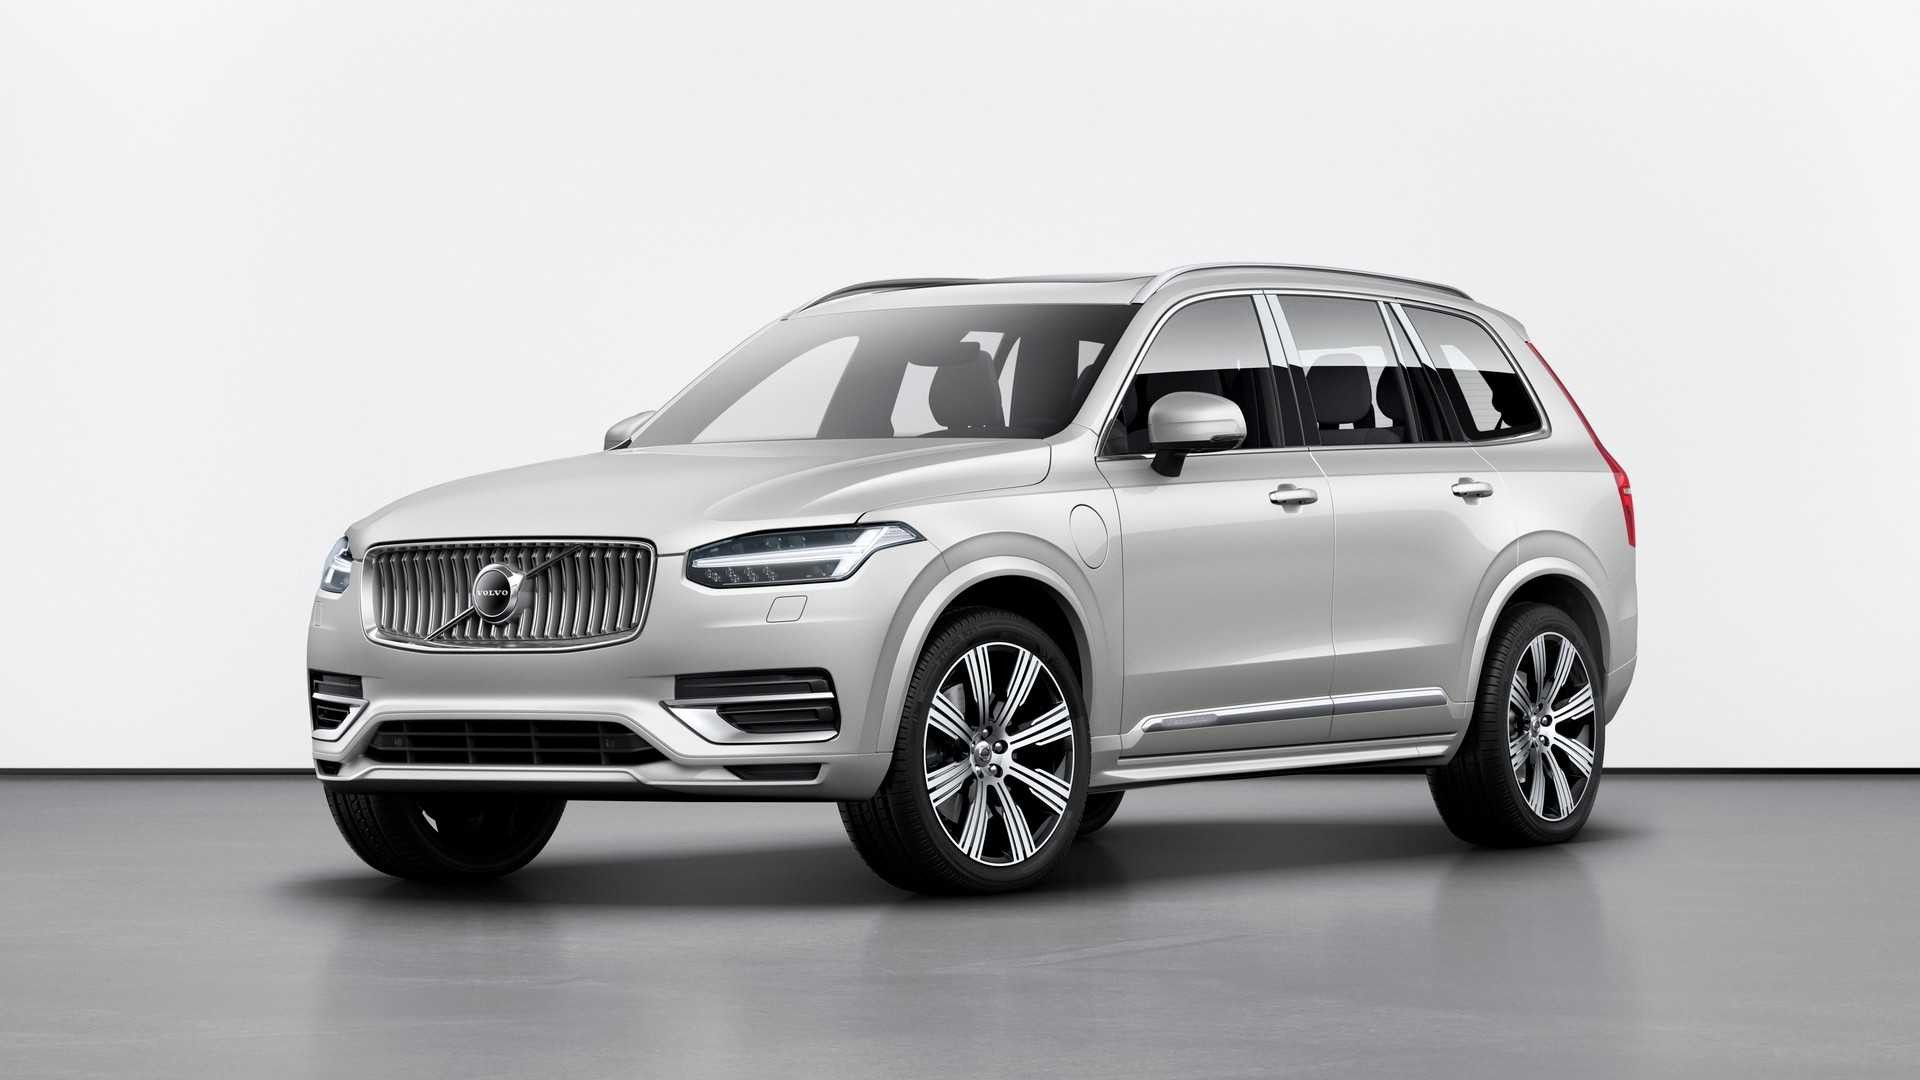 Volvo Plug In Hybrid 2020 Review And Price In 2020 Volvo Suv Volvo Xc90 Volvo